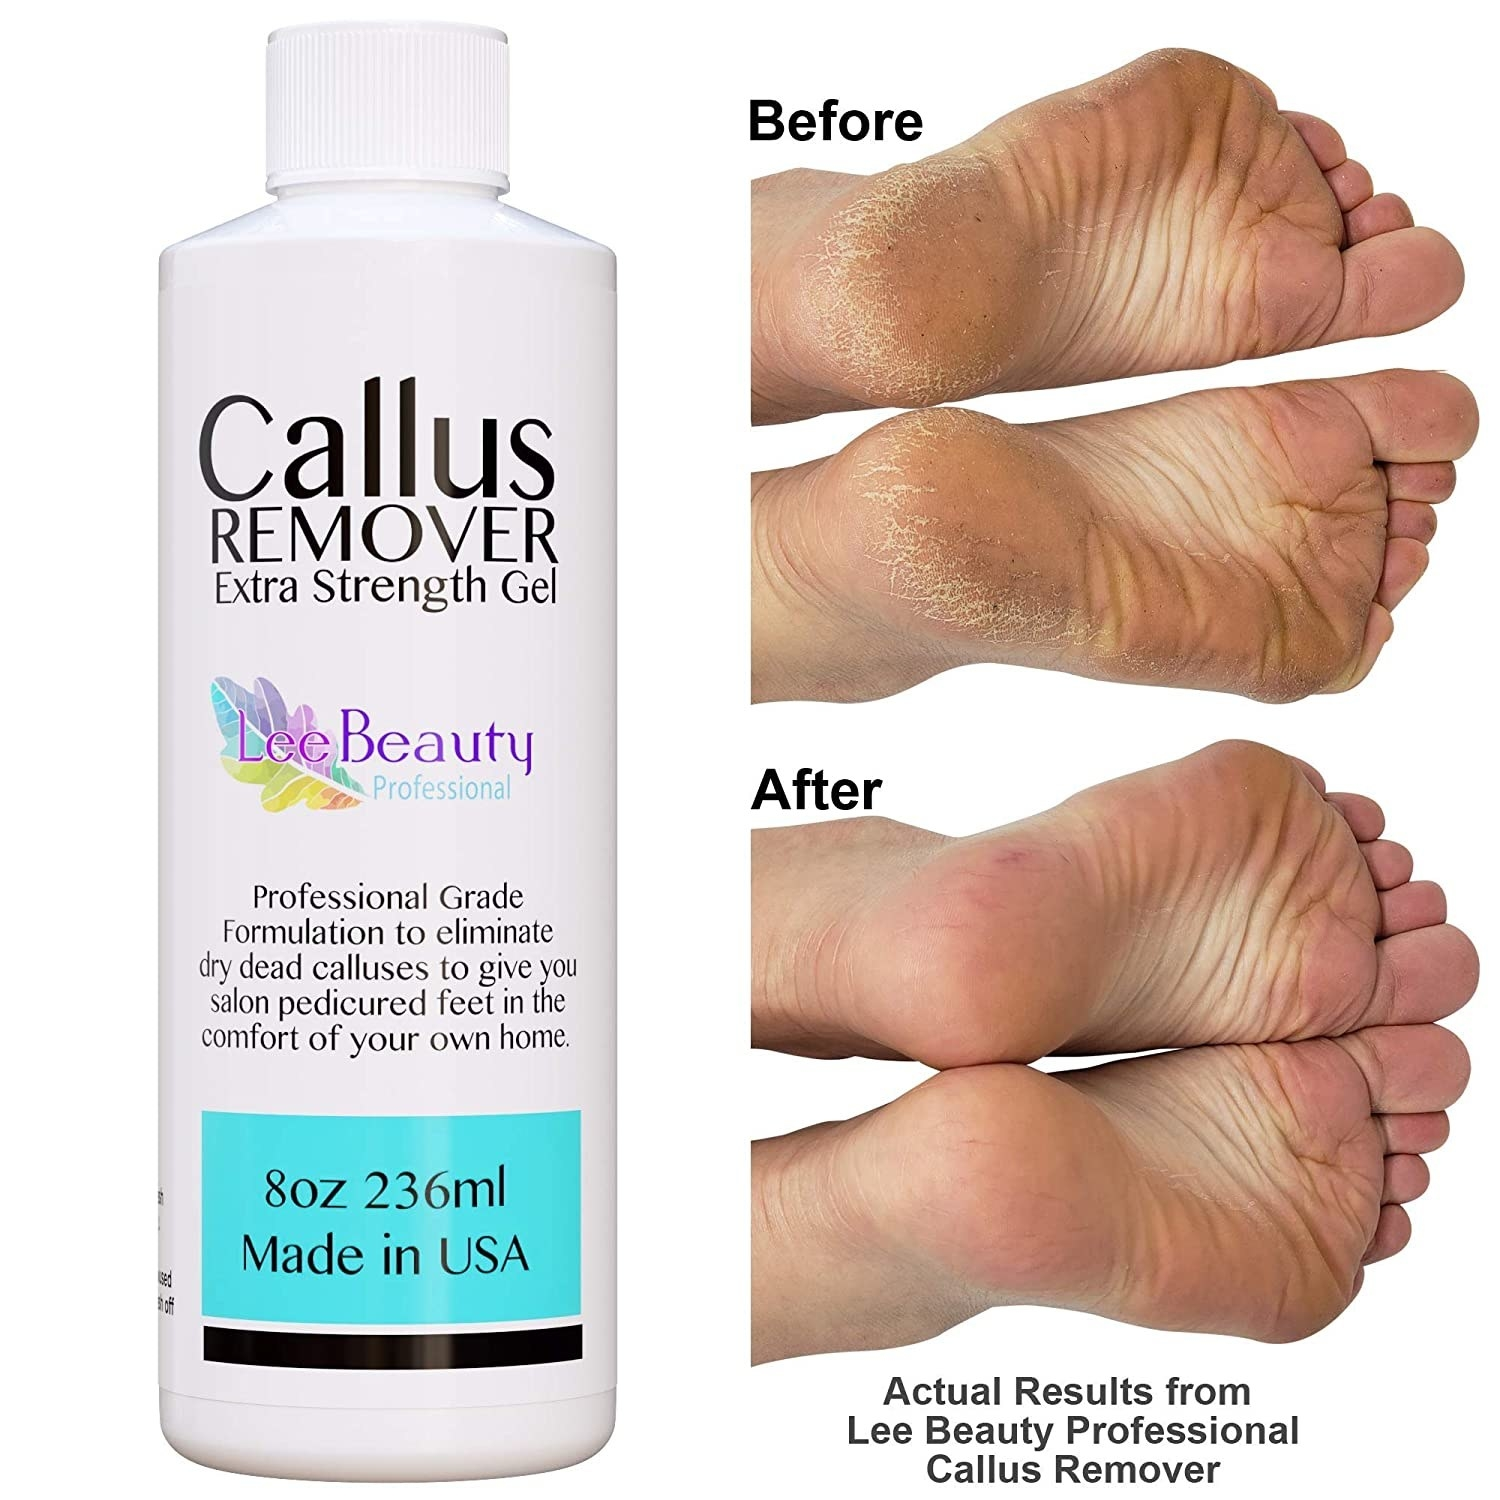 A bottle of the Callus Remover gel next to a before and after photo of someone who used it on their feet.